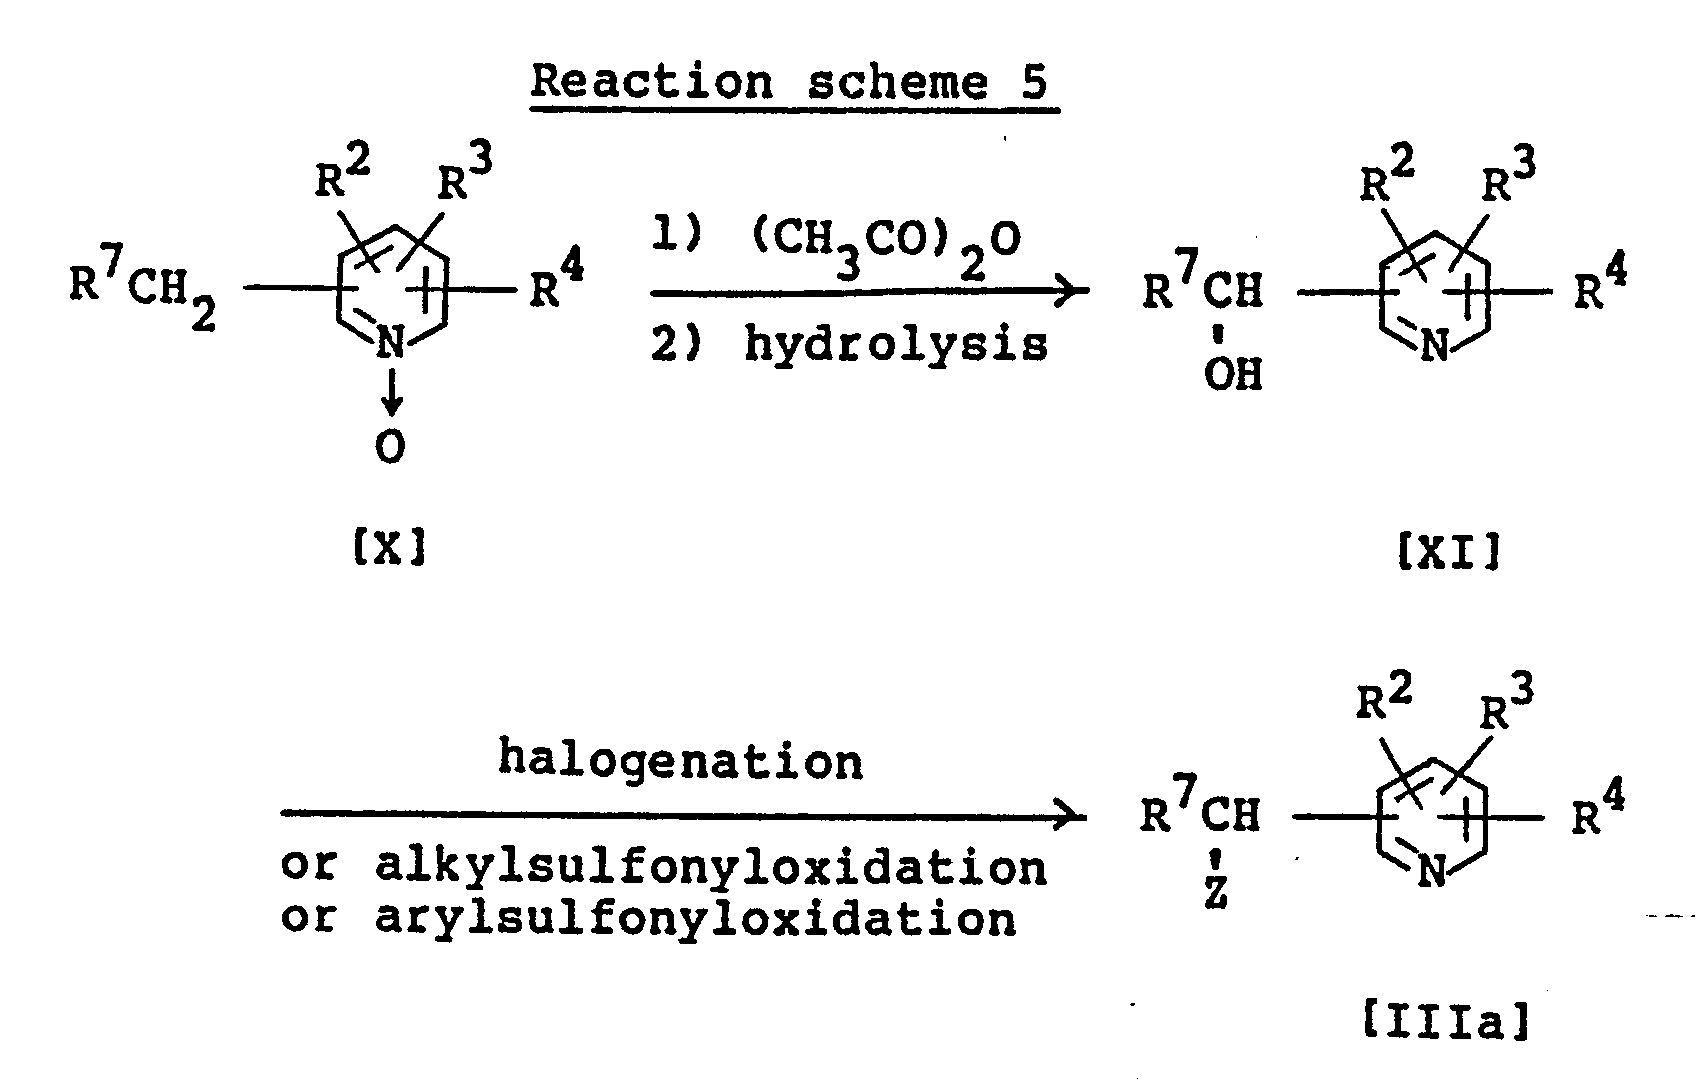 reaction of 2 alkyl pyridine n oxide derivatives Nitro, lower alkyl or lower alkylthio pyridine 1-oxide derivatives ca -1-hydroxy-imidazolidine and 2-chloromethyl-pyridine n-oxide there is.